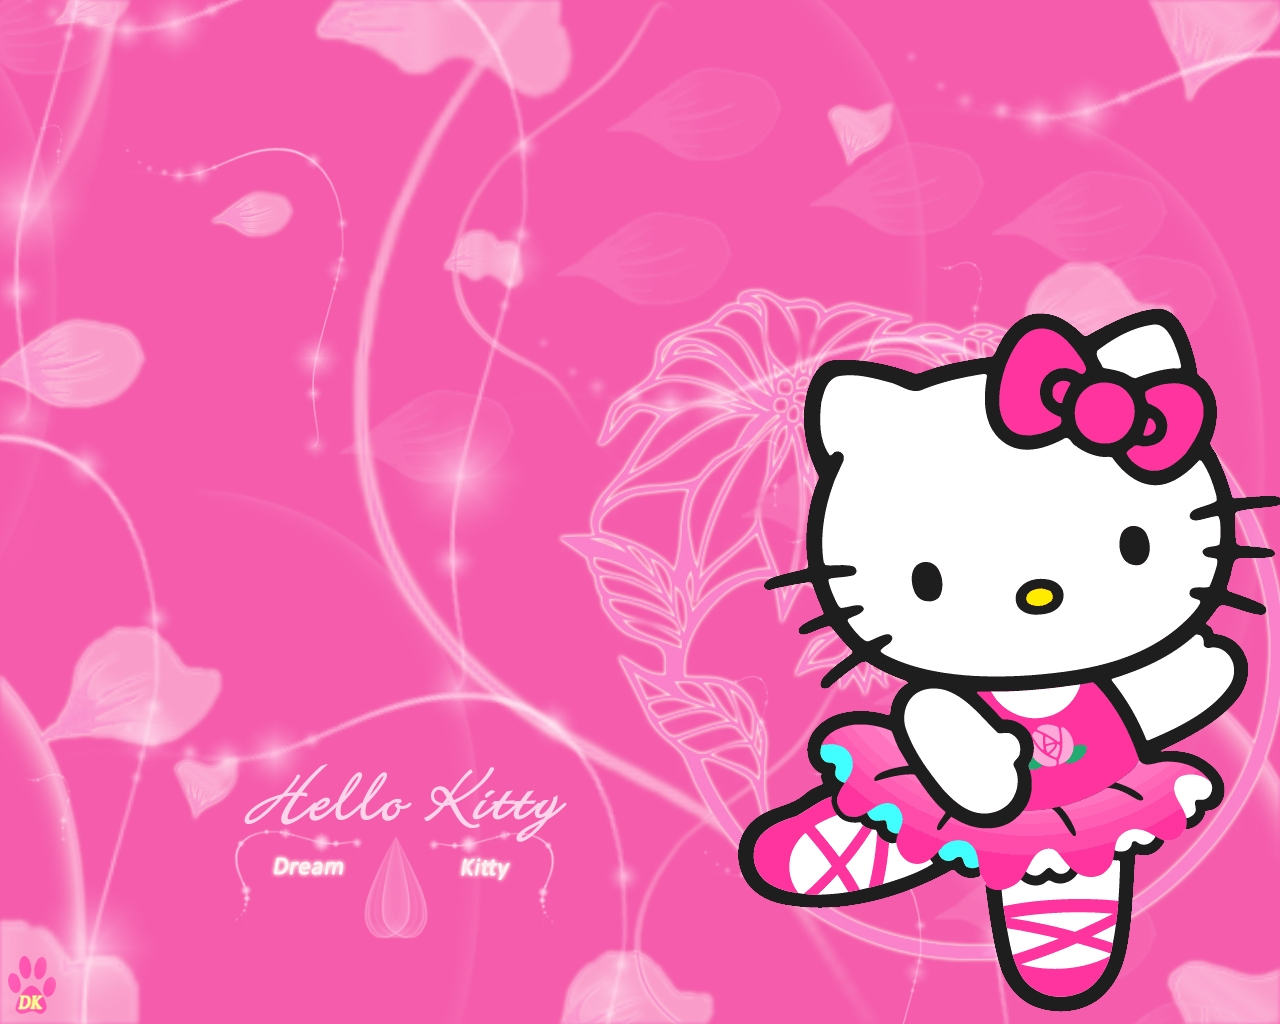 Cute Hello Kitty Backgrounds ImageBankbiz 1280x1024